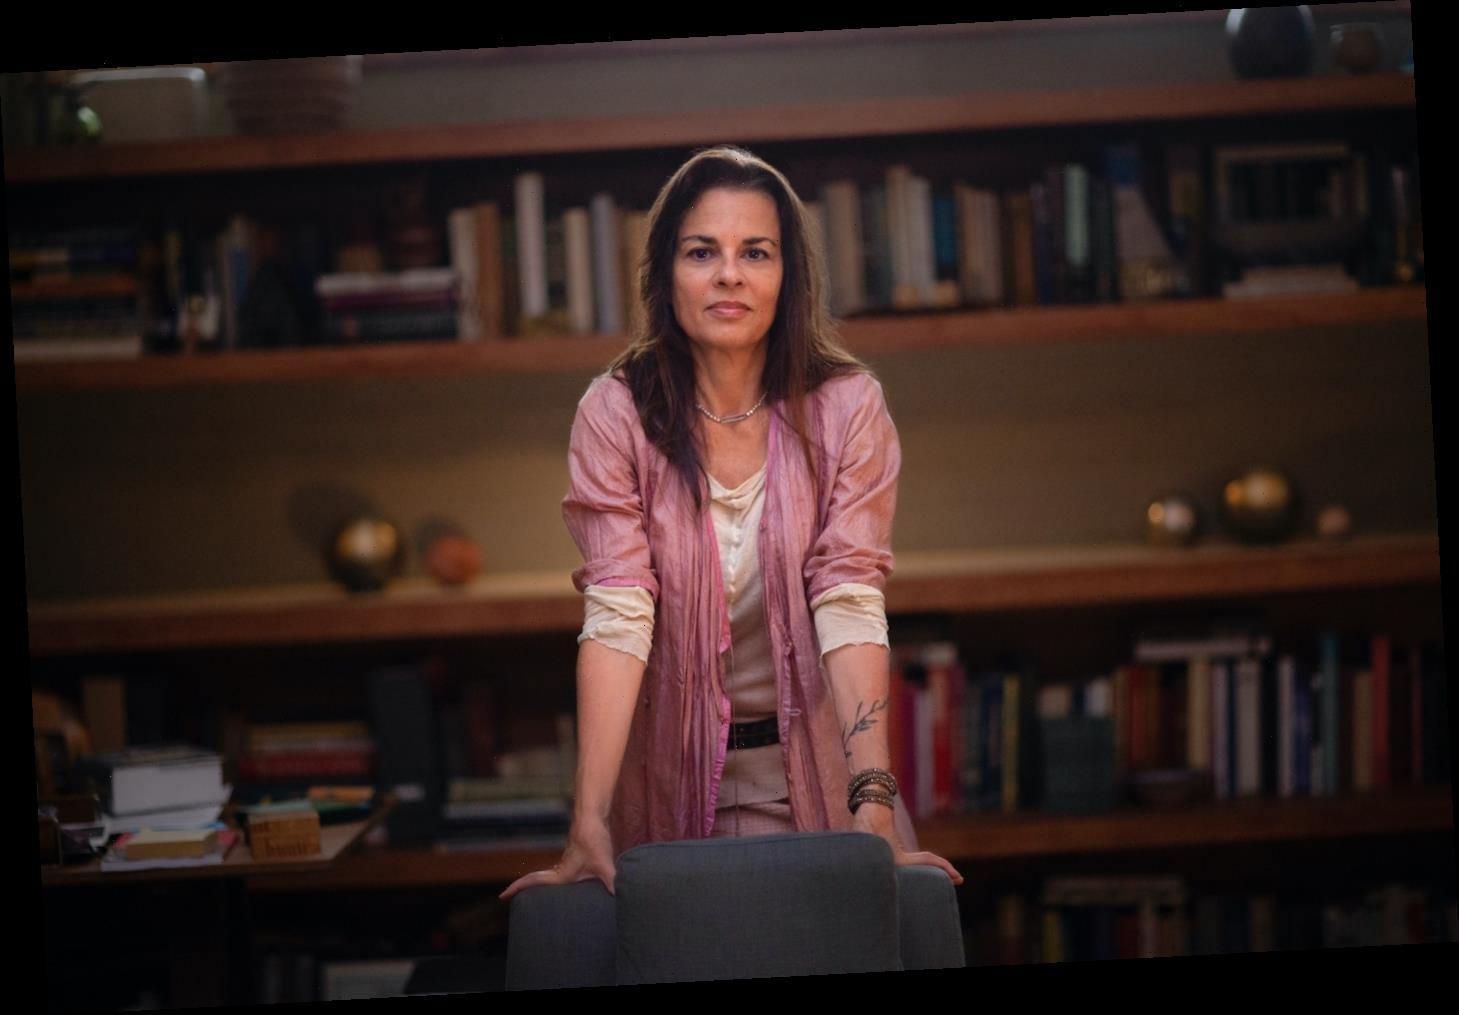 'Couples Therapy' Season 2 Trailer: Dr. Orna Takes on Three Couples and a Pandemic